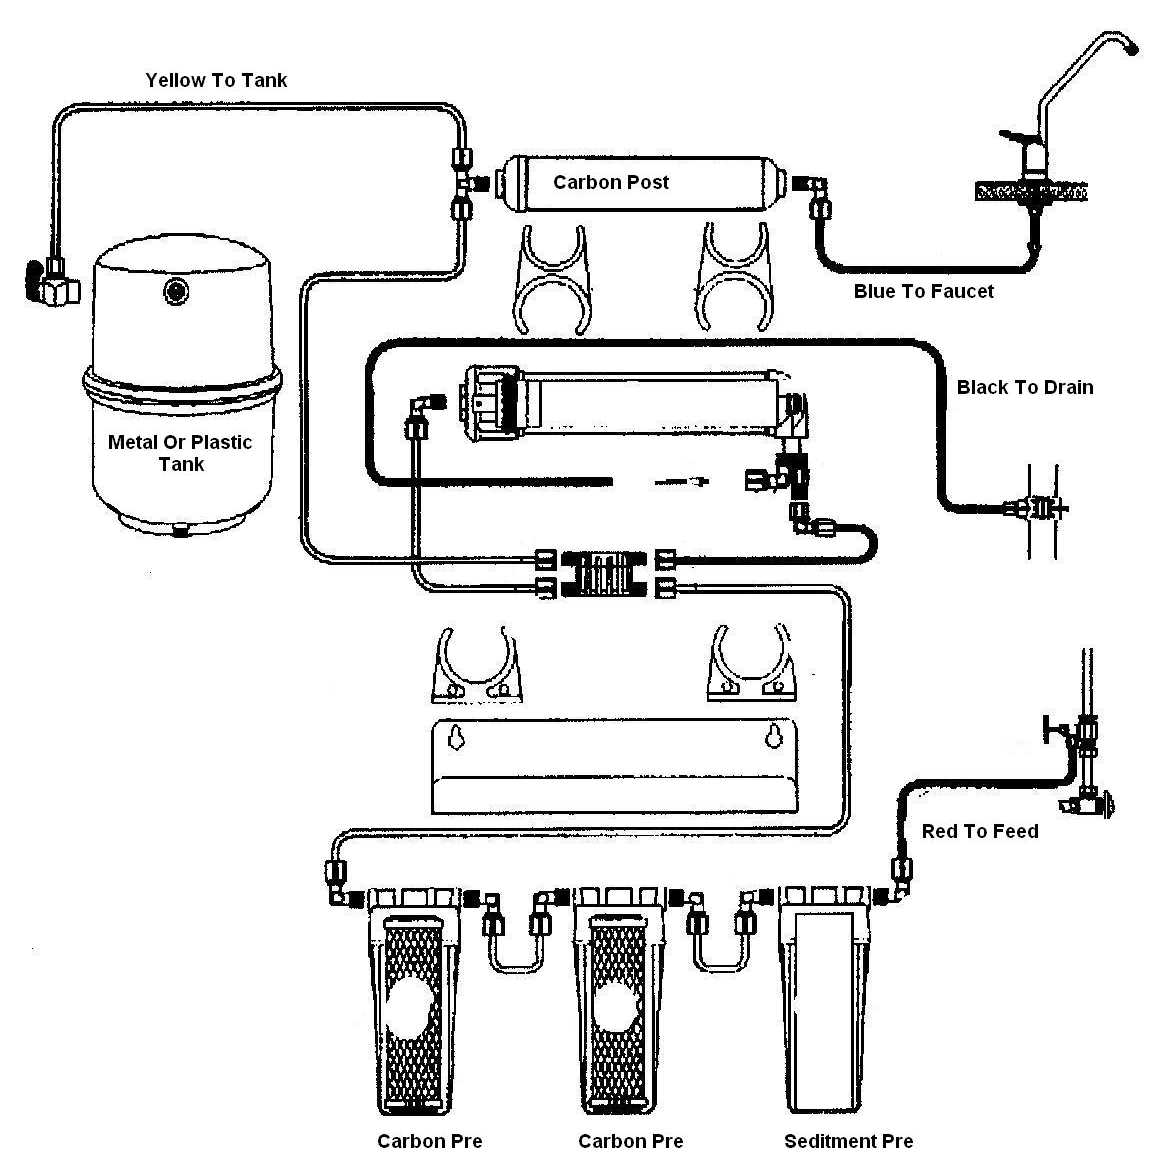 Water Filterreverse Osmosisshowerwhole House Filter Wiring Diagram Whole Get Free Image About